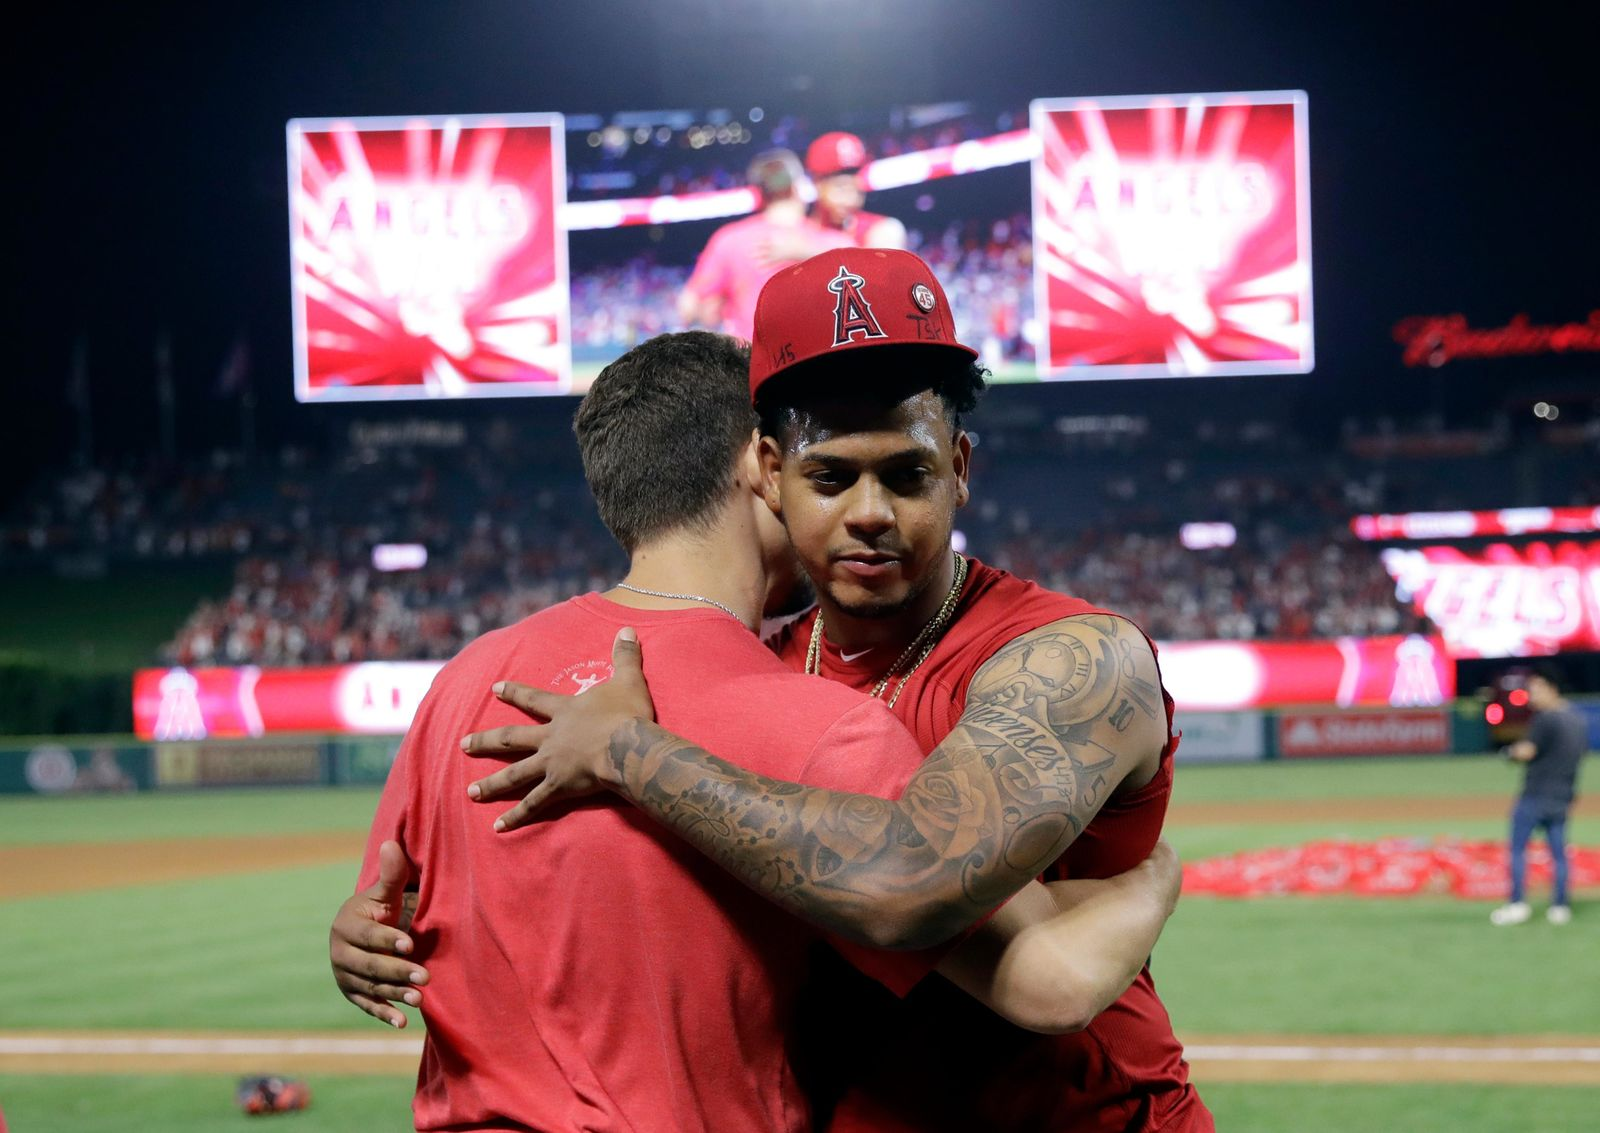 Los Angeles Angels relief pitcher Felix Pena, right, hugs starter Taylor Cole after they threw a combined-no hitter against the Seattle Mariners during a baseball game Friday, July 12, 2019, in Anaheim, Calif. The Angels won 13-0. (AP Photo/Marcio Jose Sanchez)